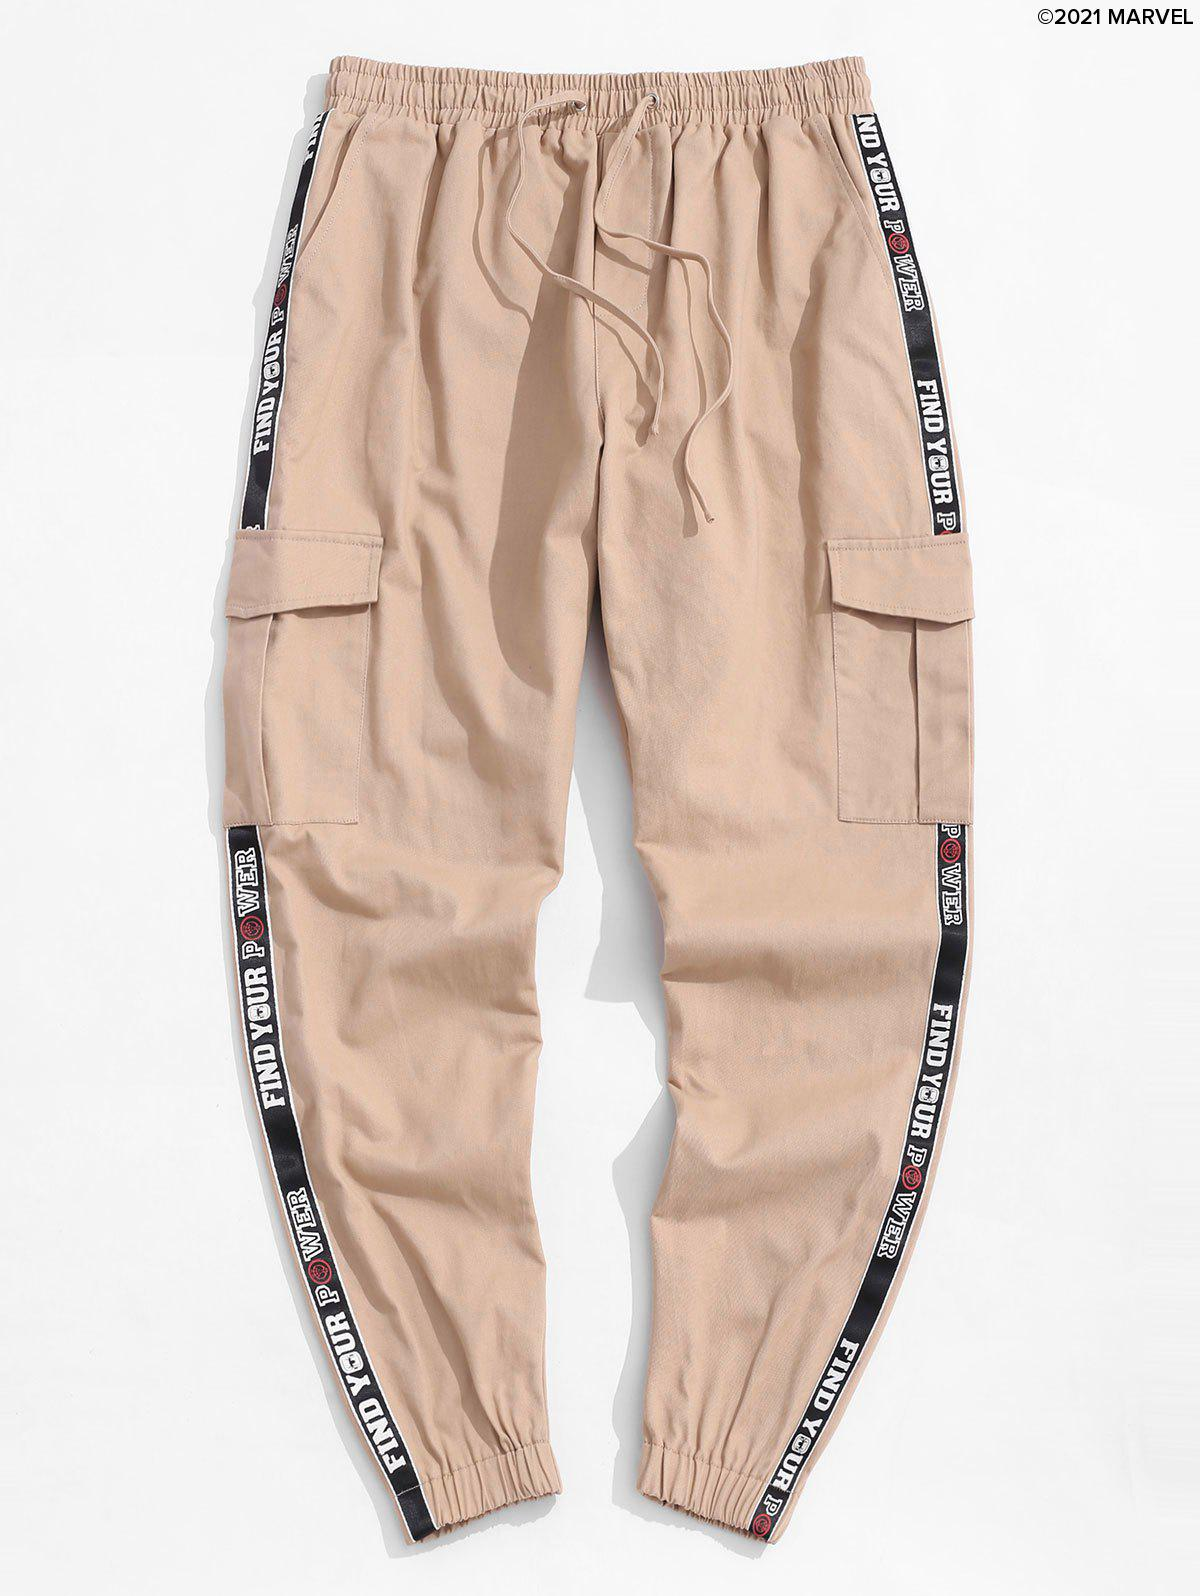 Fashion Marvel Spider-Man Letter Patched Cargo Pants